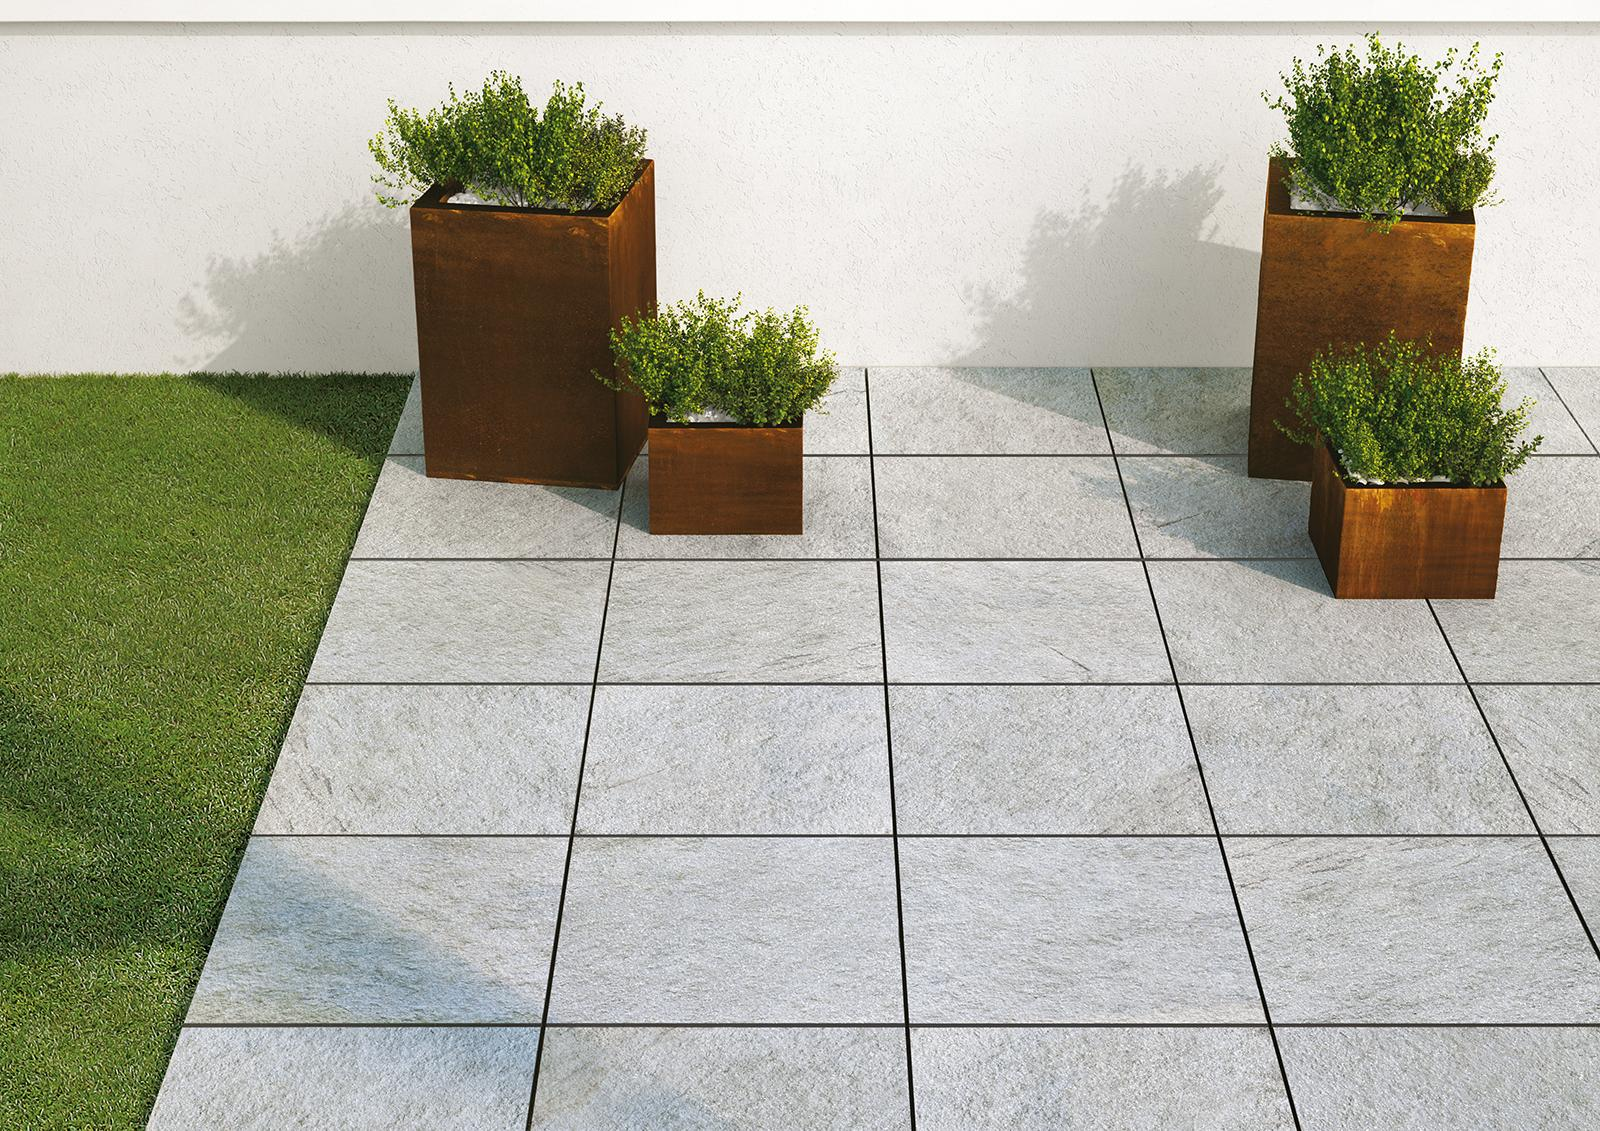 Multiquartz20 thick outdoor porcelain stoneware marazzi multiquartz20 stone effect 20mm thickness dailygadgetfo Images